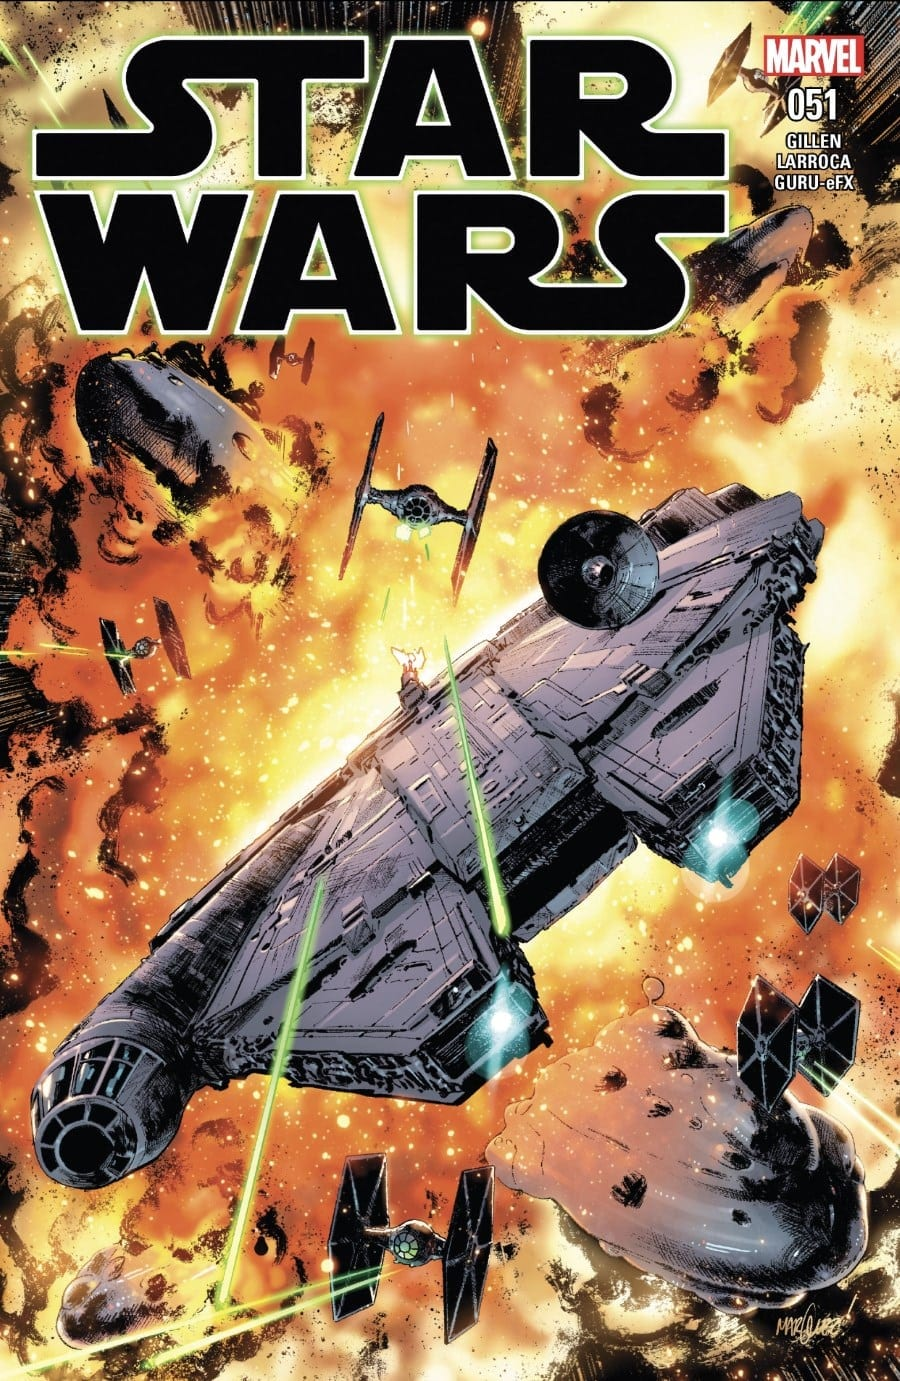 Star Wars #51 Cover